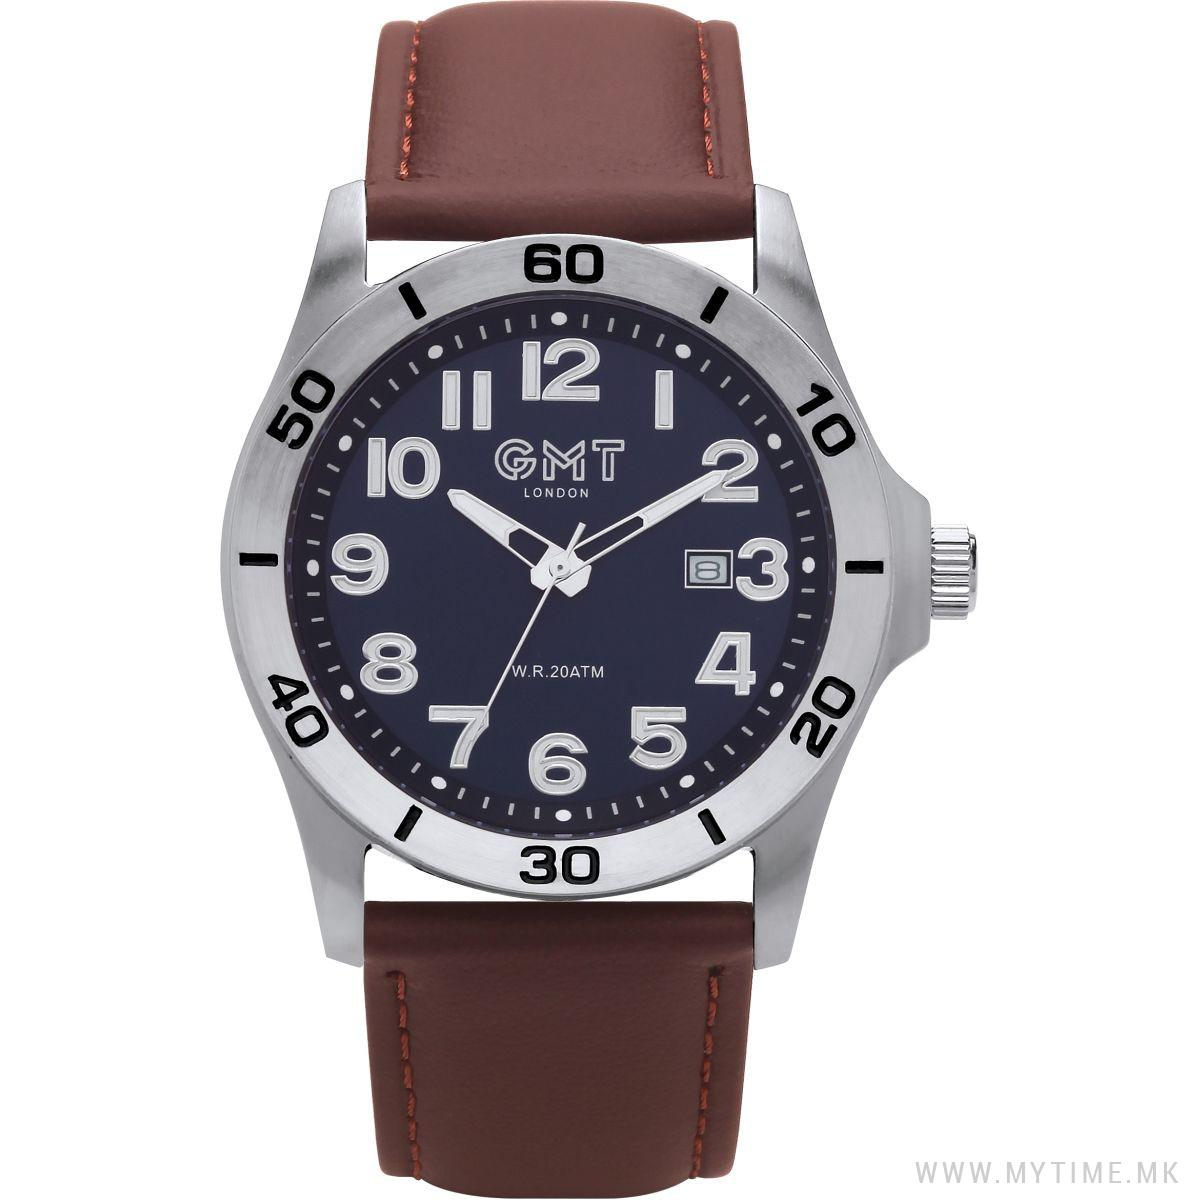 GG0008-03 Multi-Function